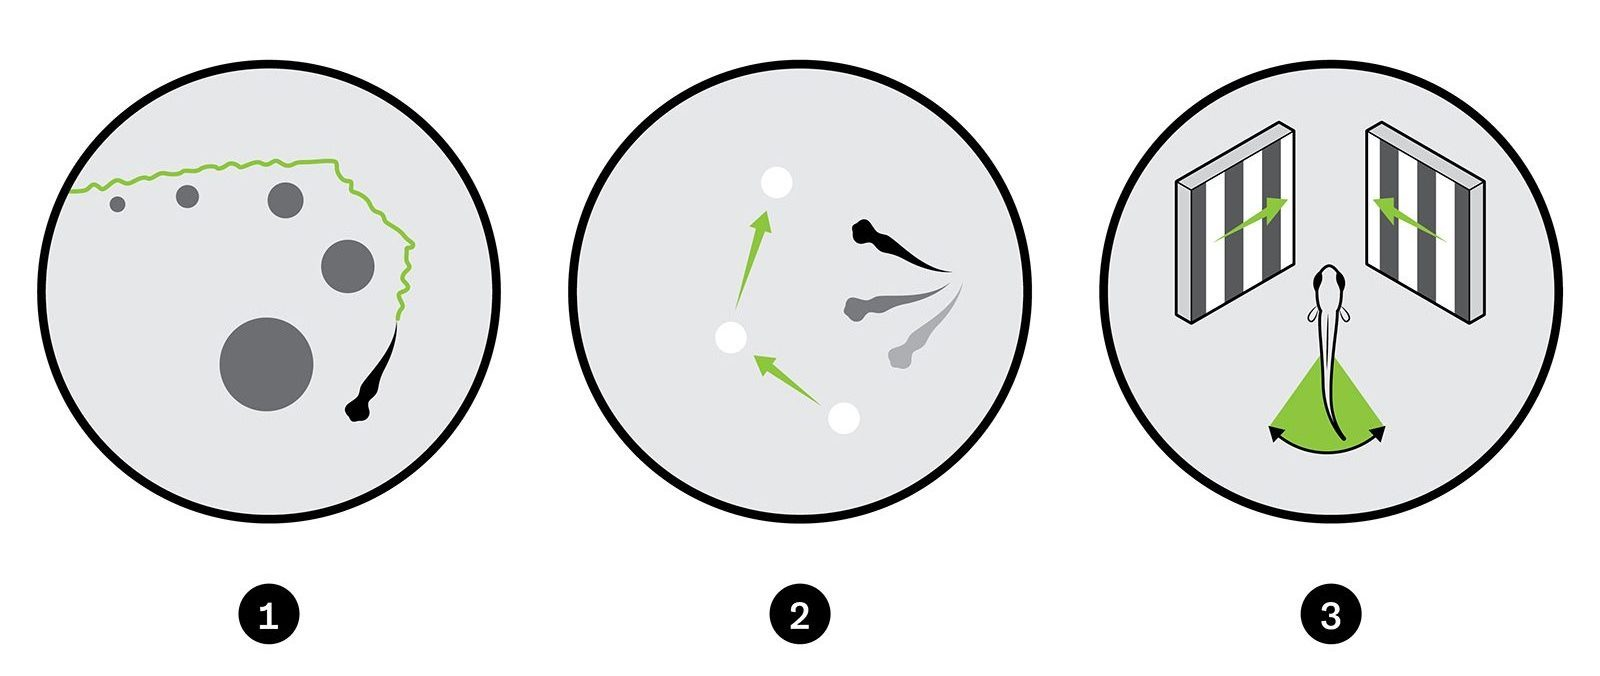 Illustration of three experiments: 1. Zebrafish shape swimming past dark circles increasing progressively in size. 2. Small white circles with one-directional green arrows in between and three zebrafish shapes facing each circle. 3. A zebrafish facing and pivoting between two squares of black and white vertical lines angled up towards the centre